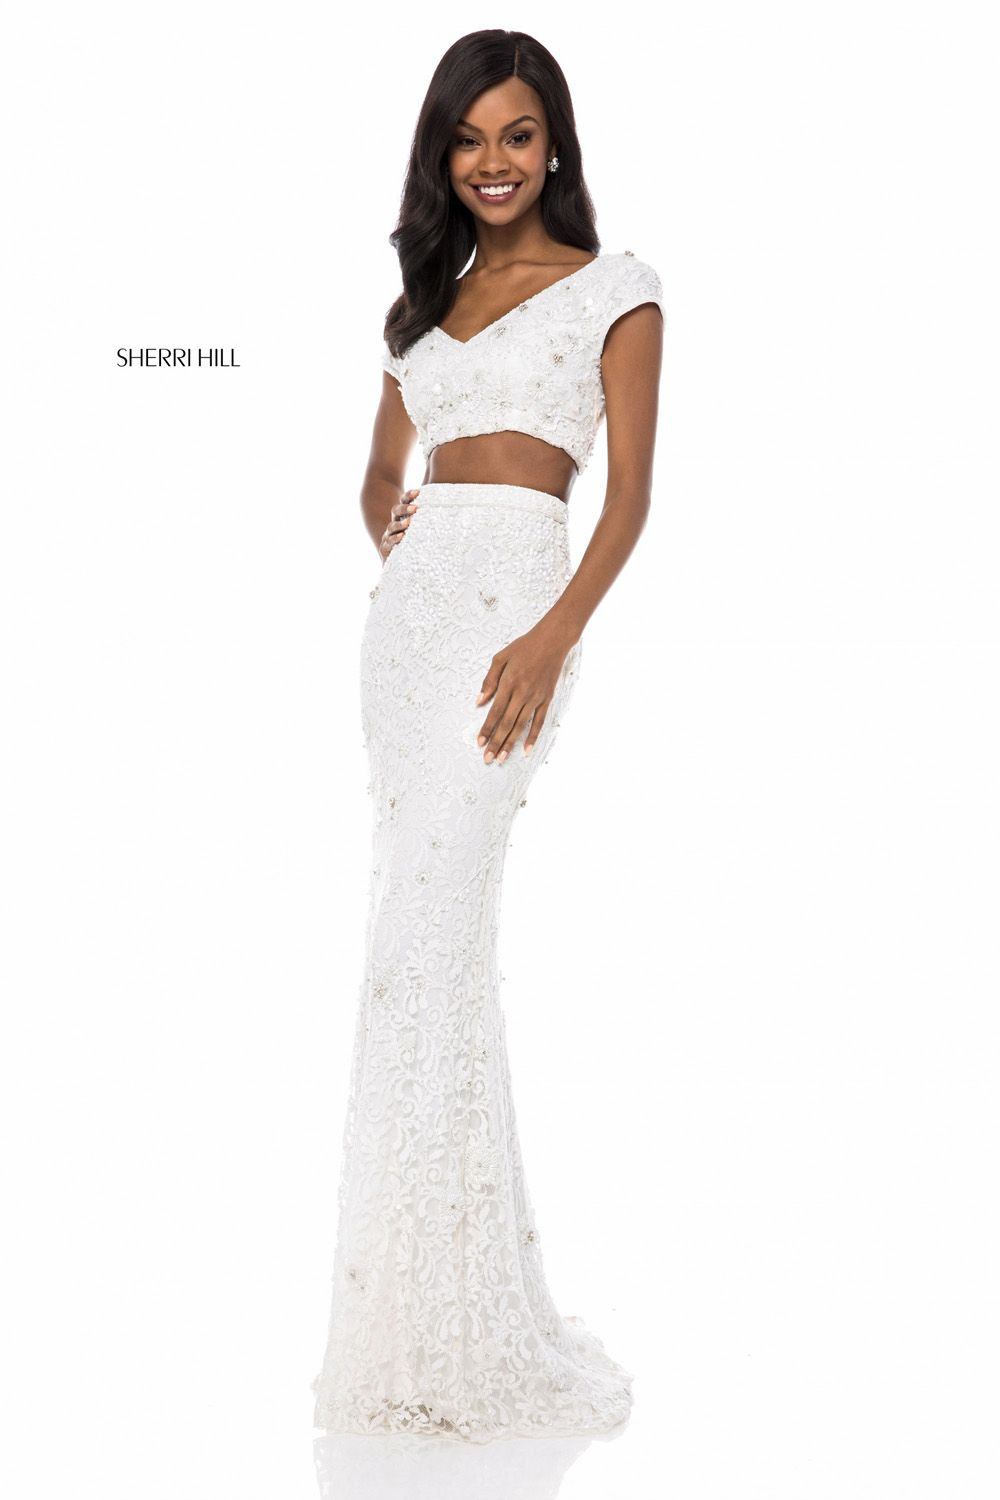 Sherri Hill 51734 - International Prom Association Dresses ...